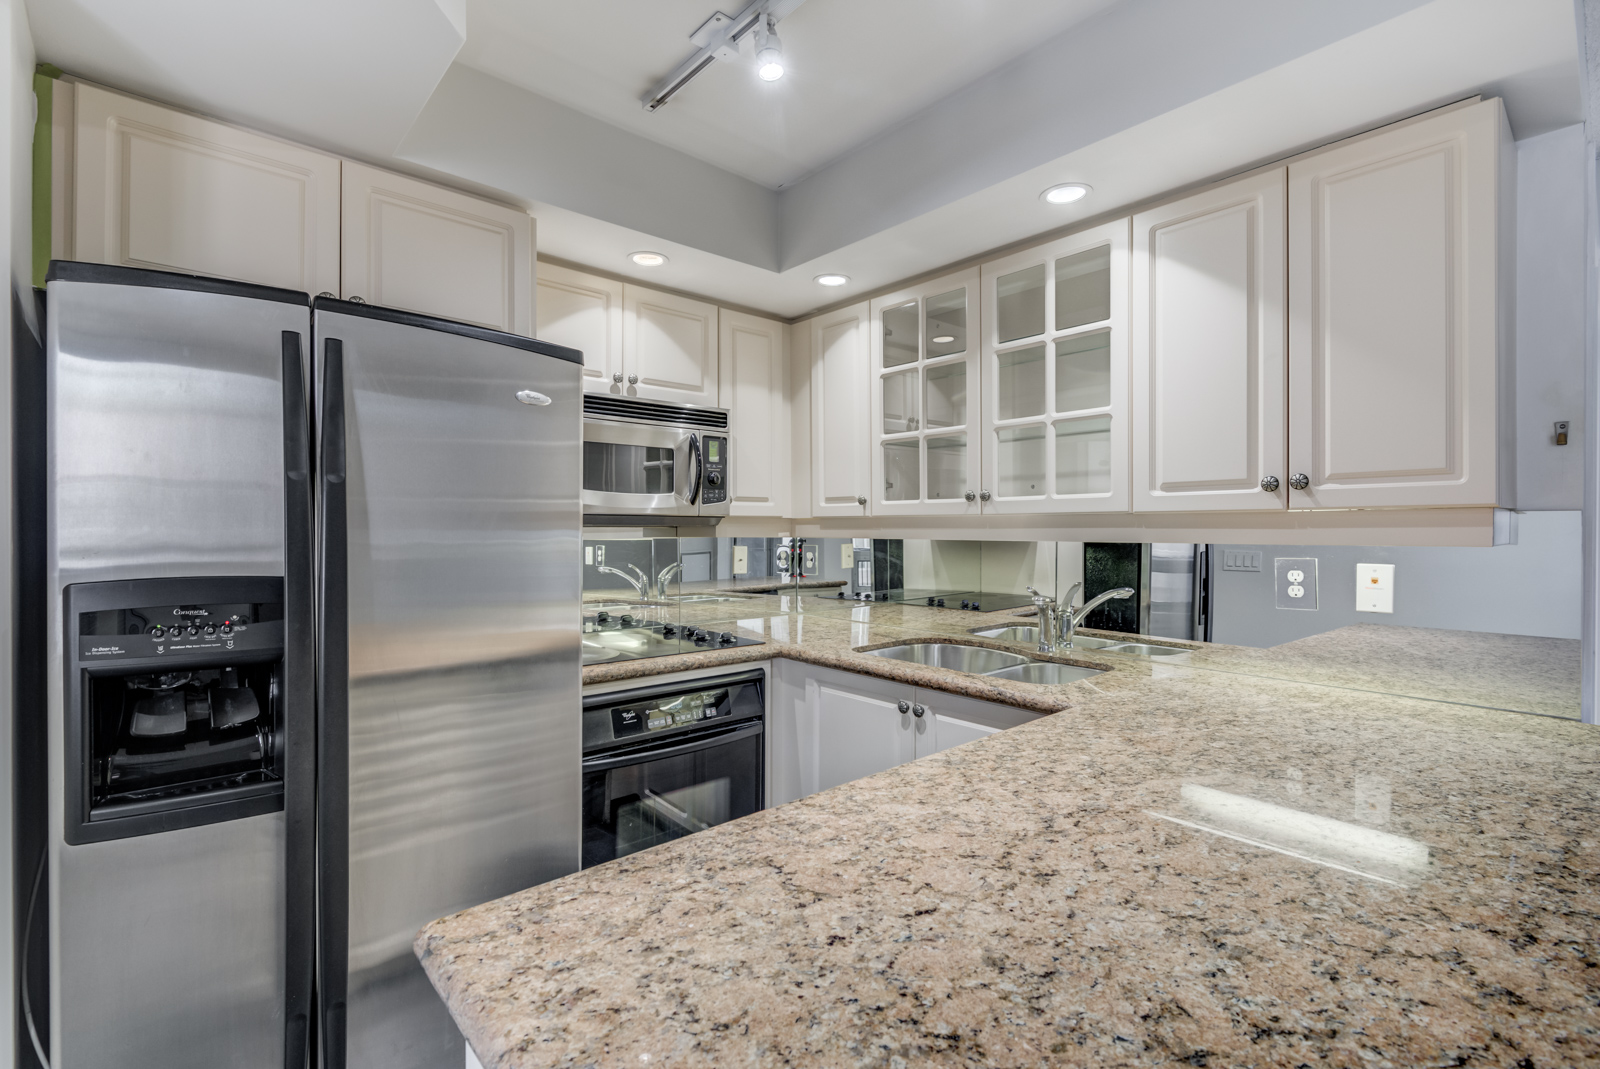 Close up of kitchen granite counter tops and silver appliances.